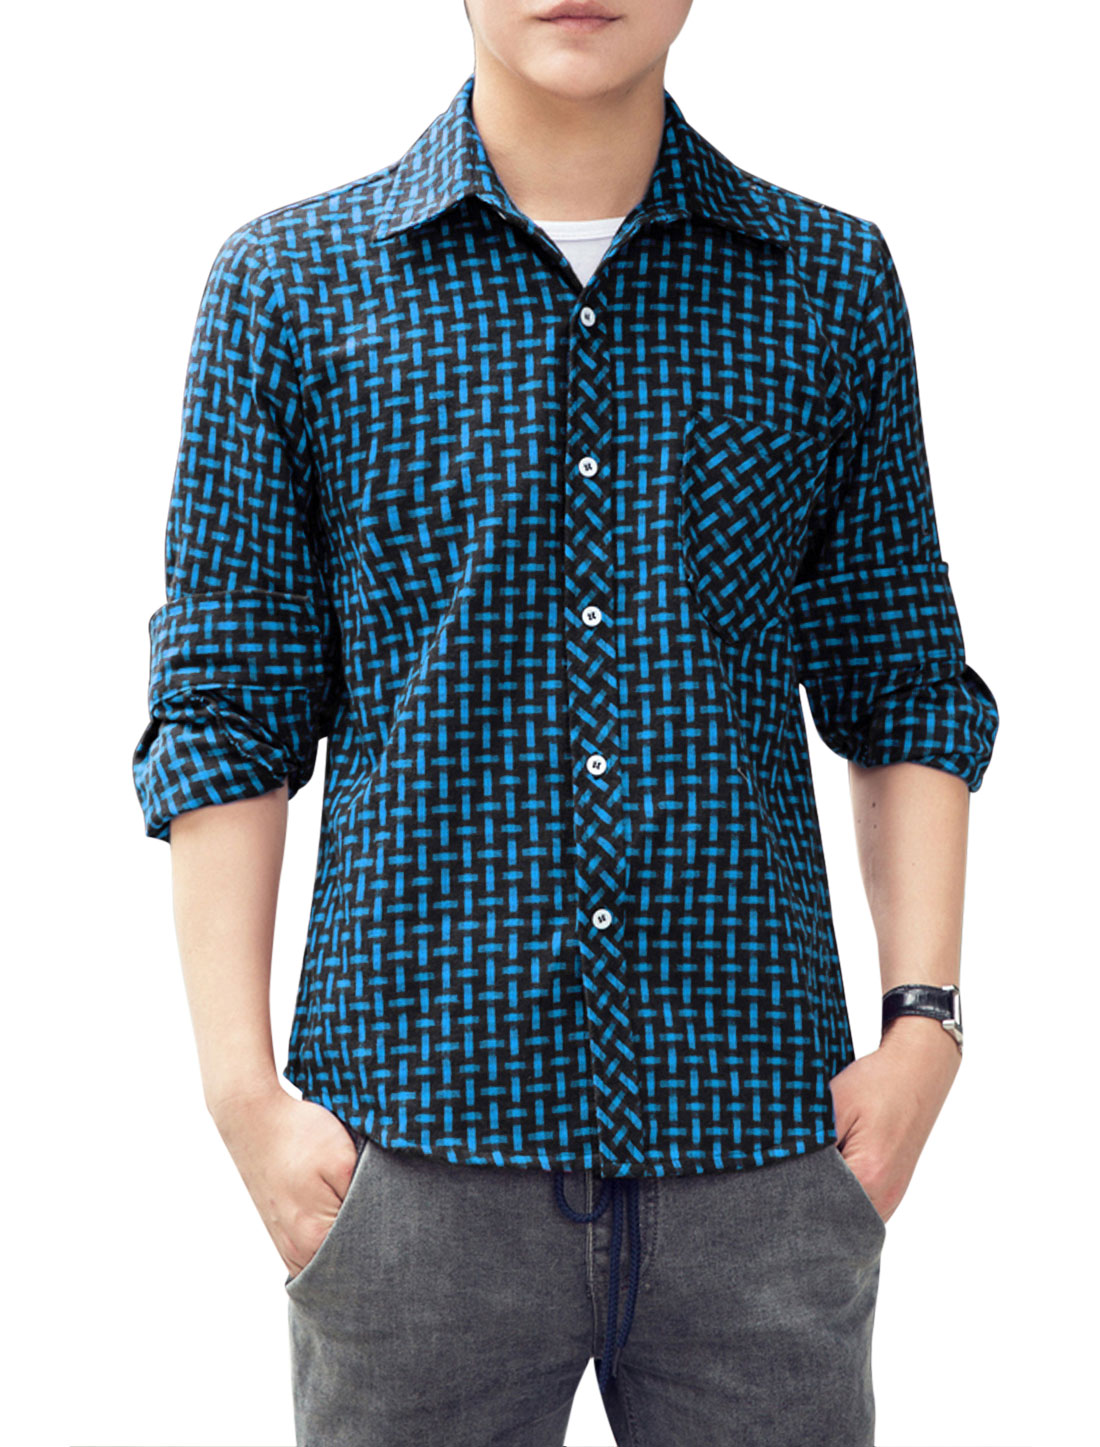 Men Point Collar Single Breasted Casual Shirt Blue Black M